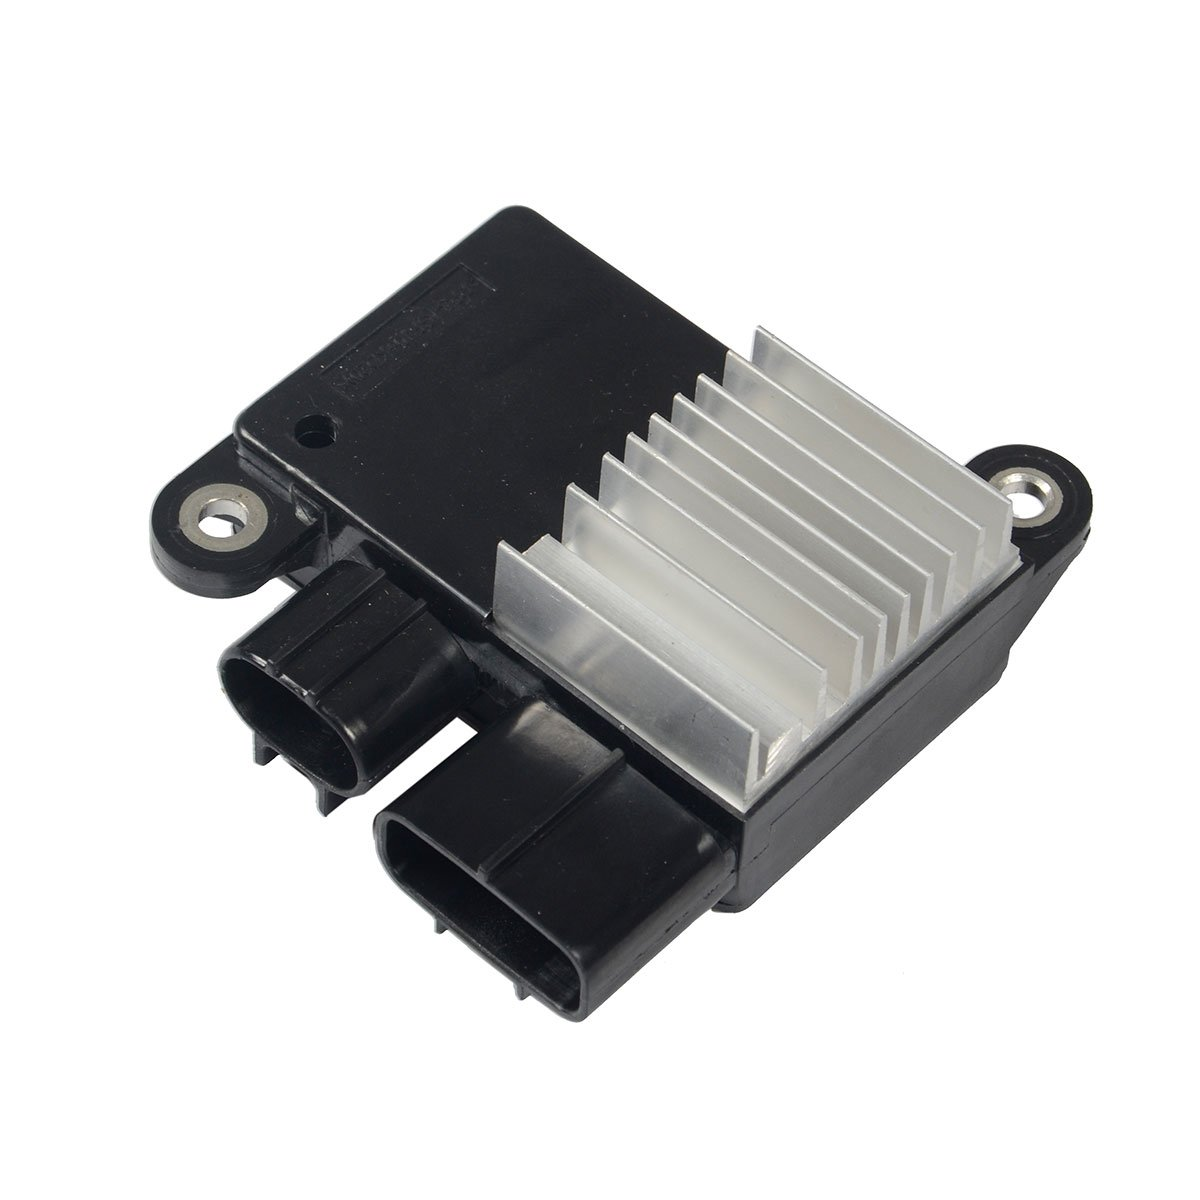 Cooling Fan Control Unit Module for Mazda 5 CX-7 2007-2009 Toyota Corolla Matrix 2009-2013